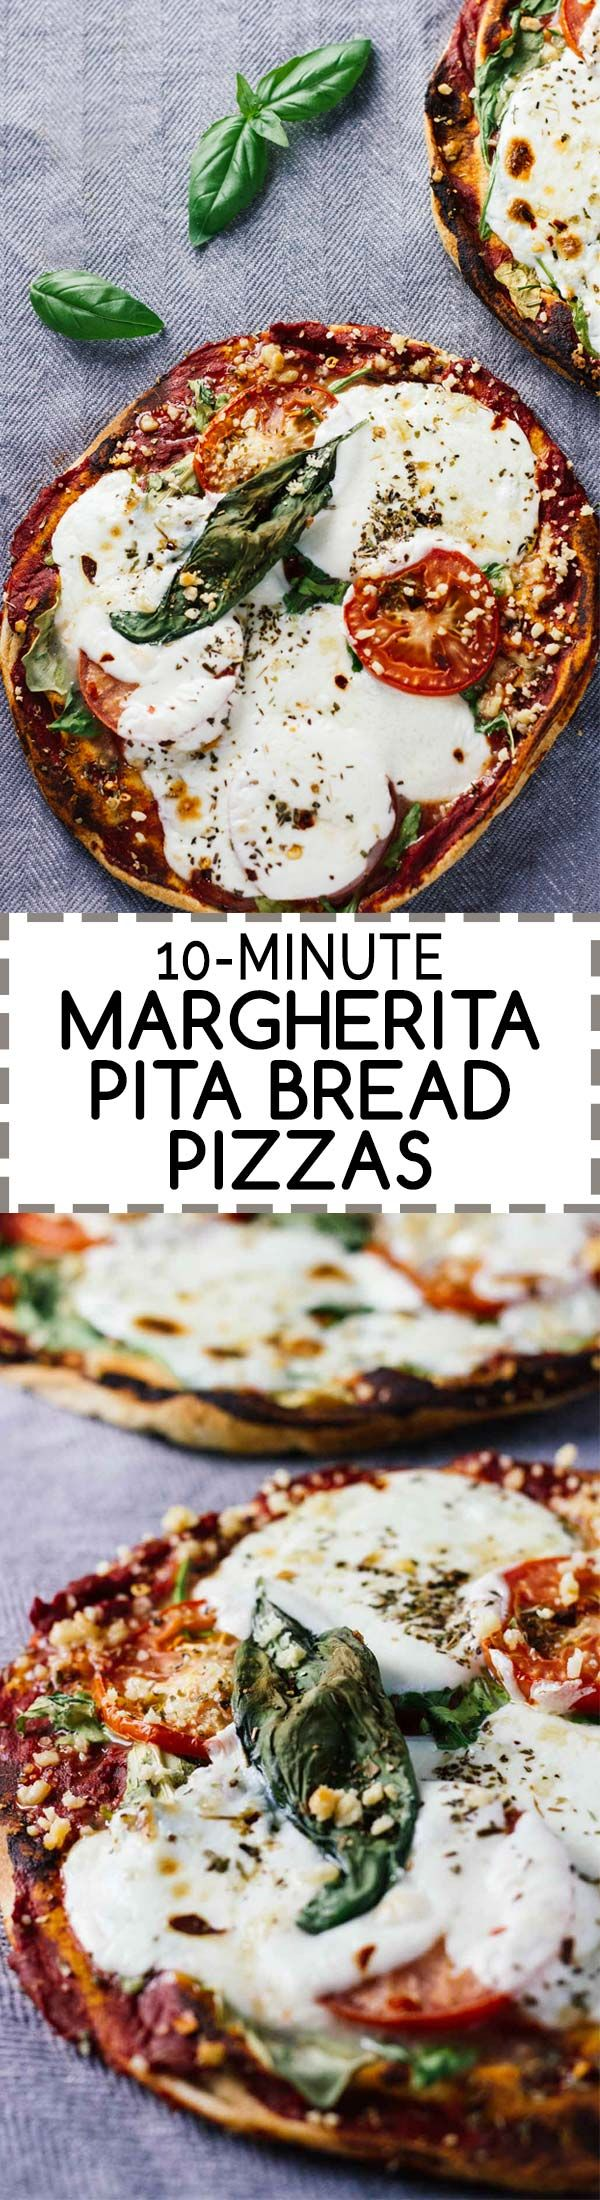 10-Minute Margherita Pita Bread Pizzas! Healthy, delicious, and easy to make!